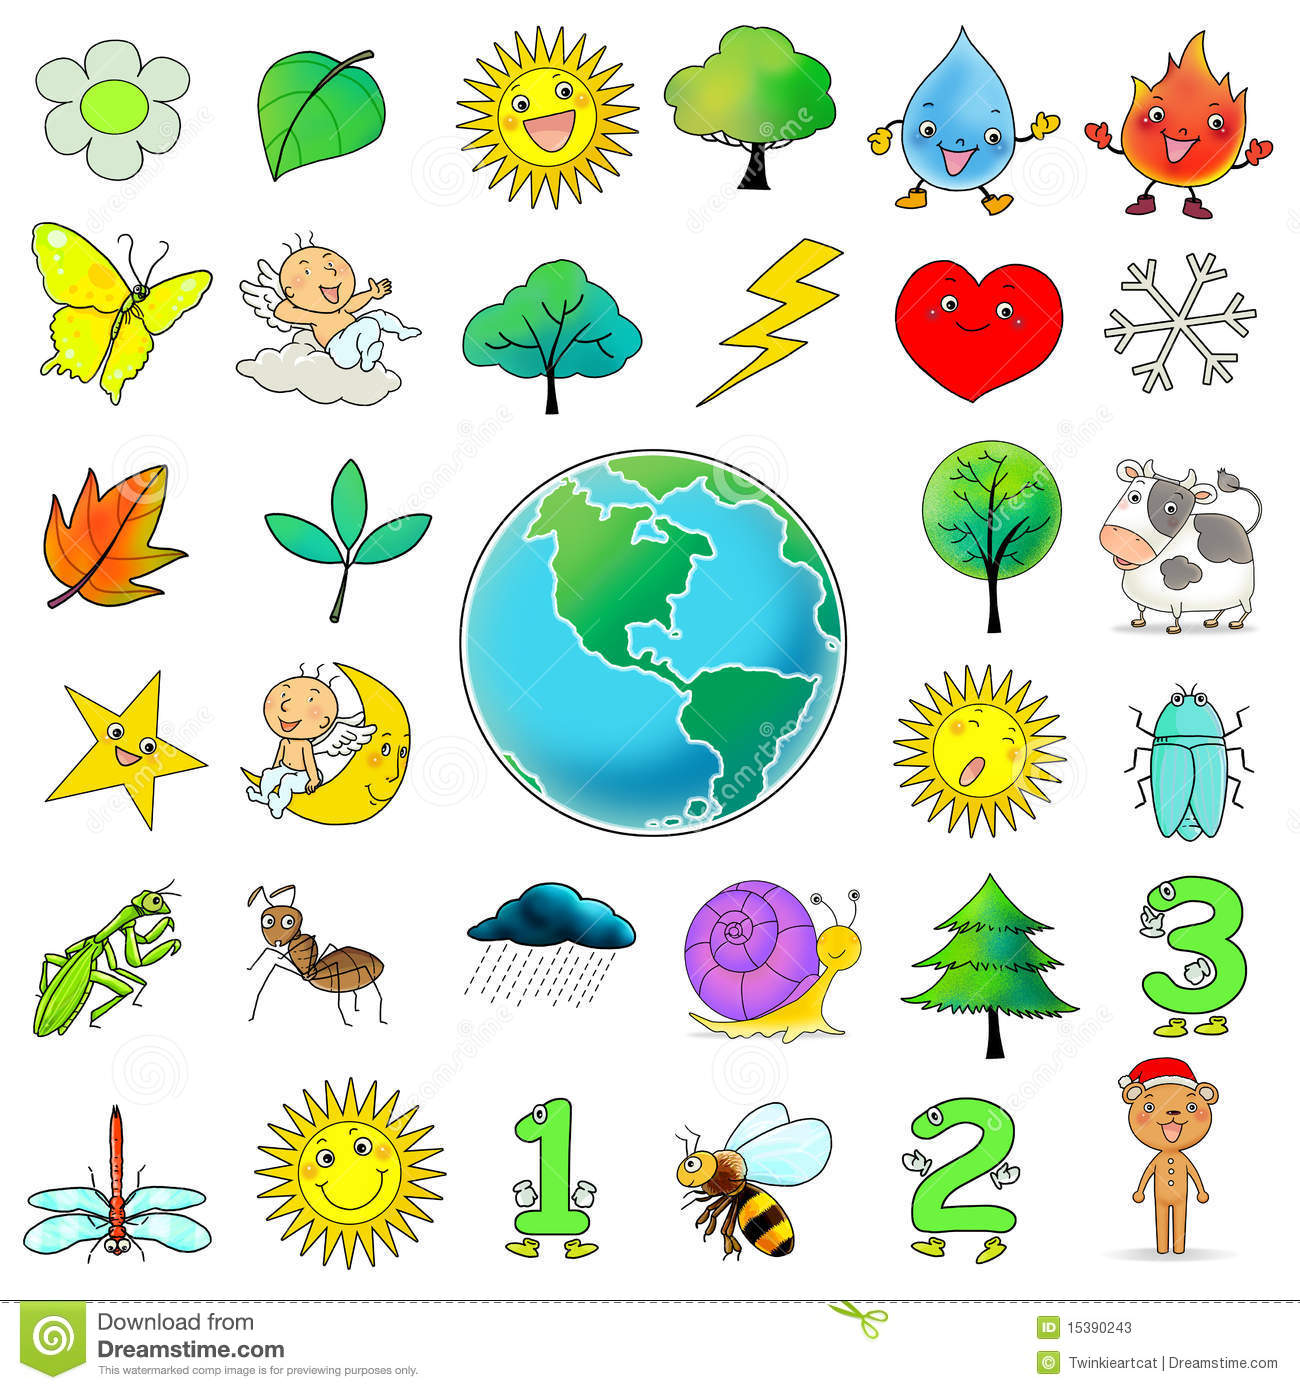 clipart icon collection - photo #32